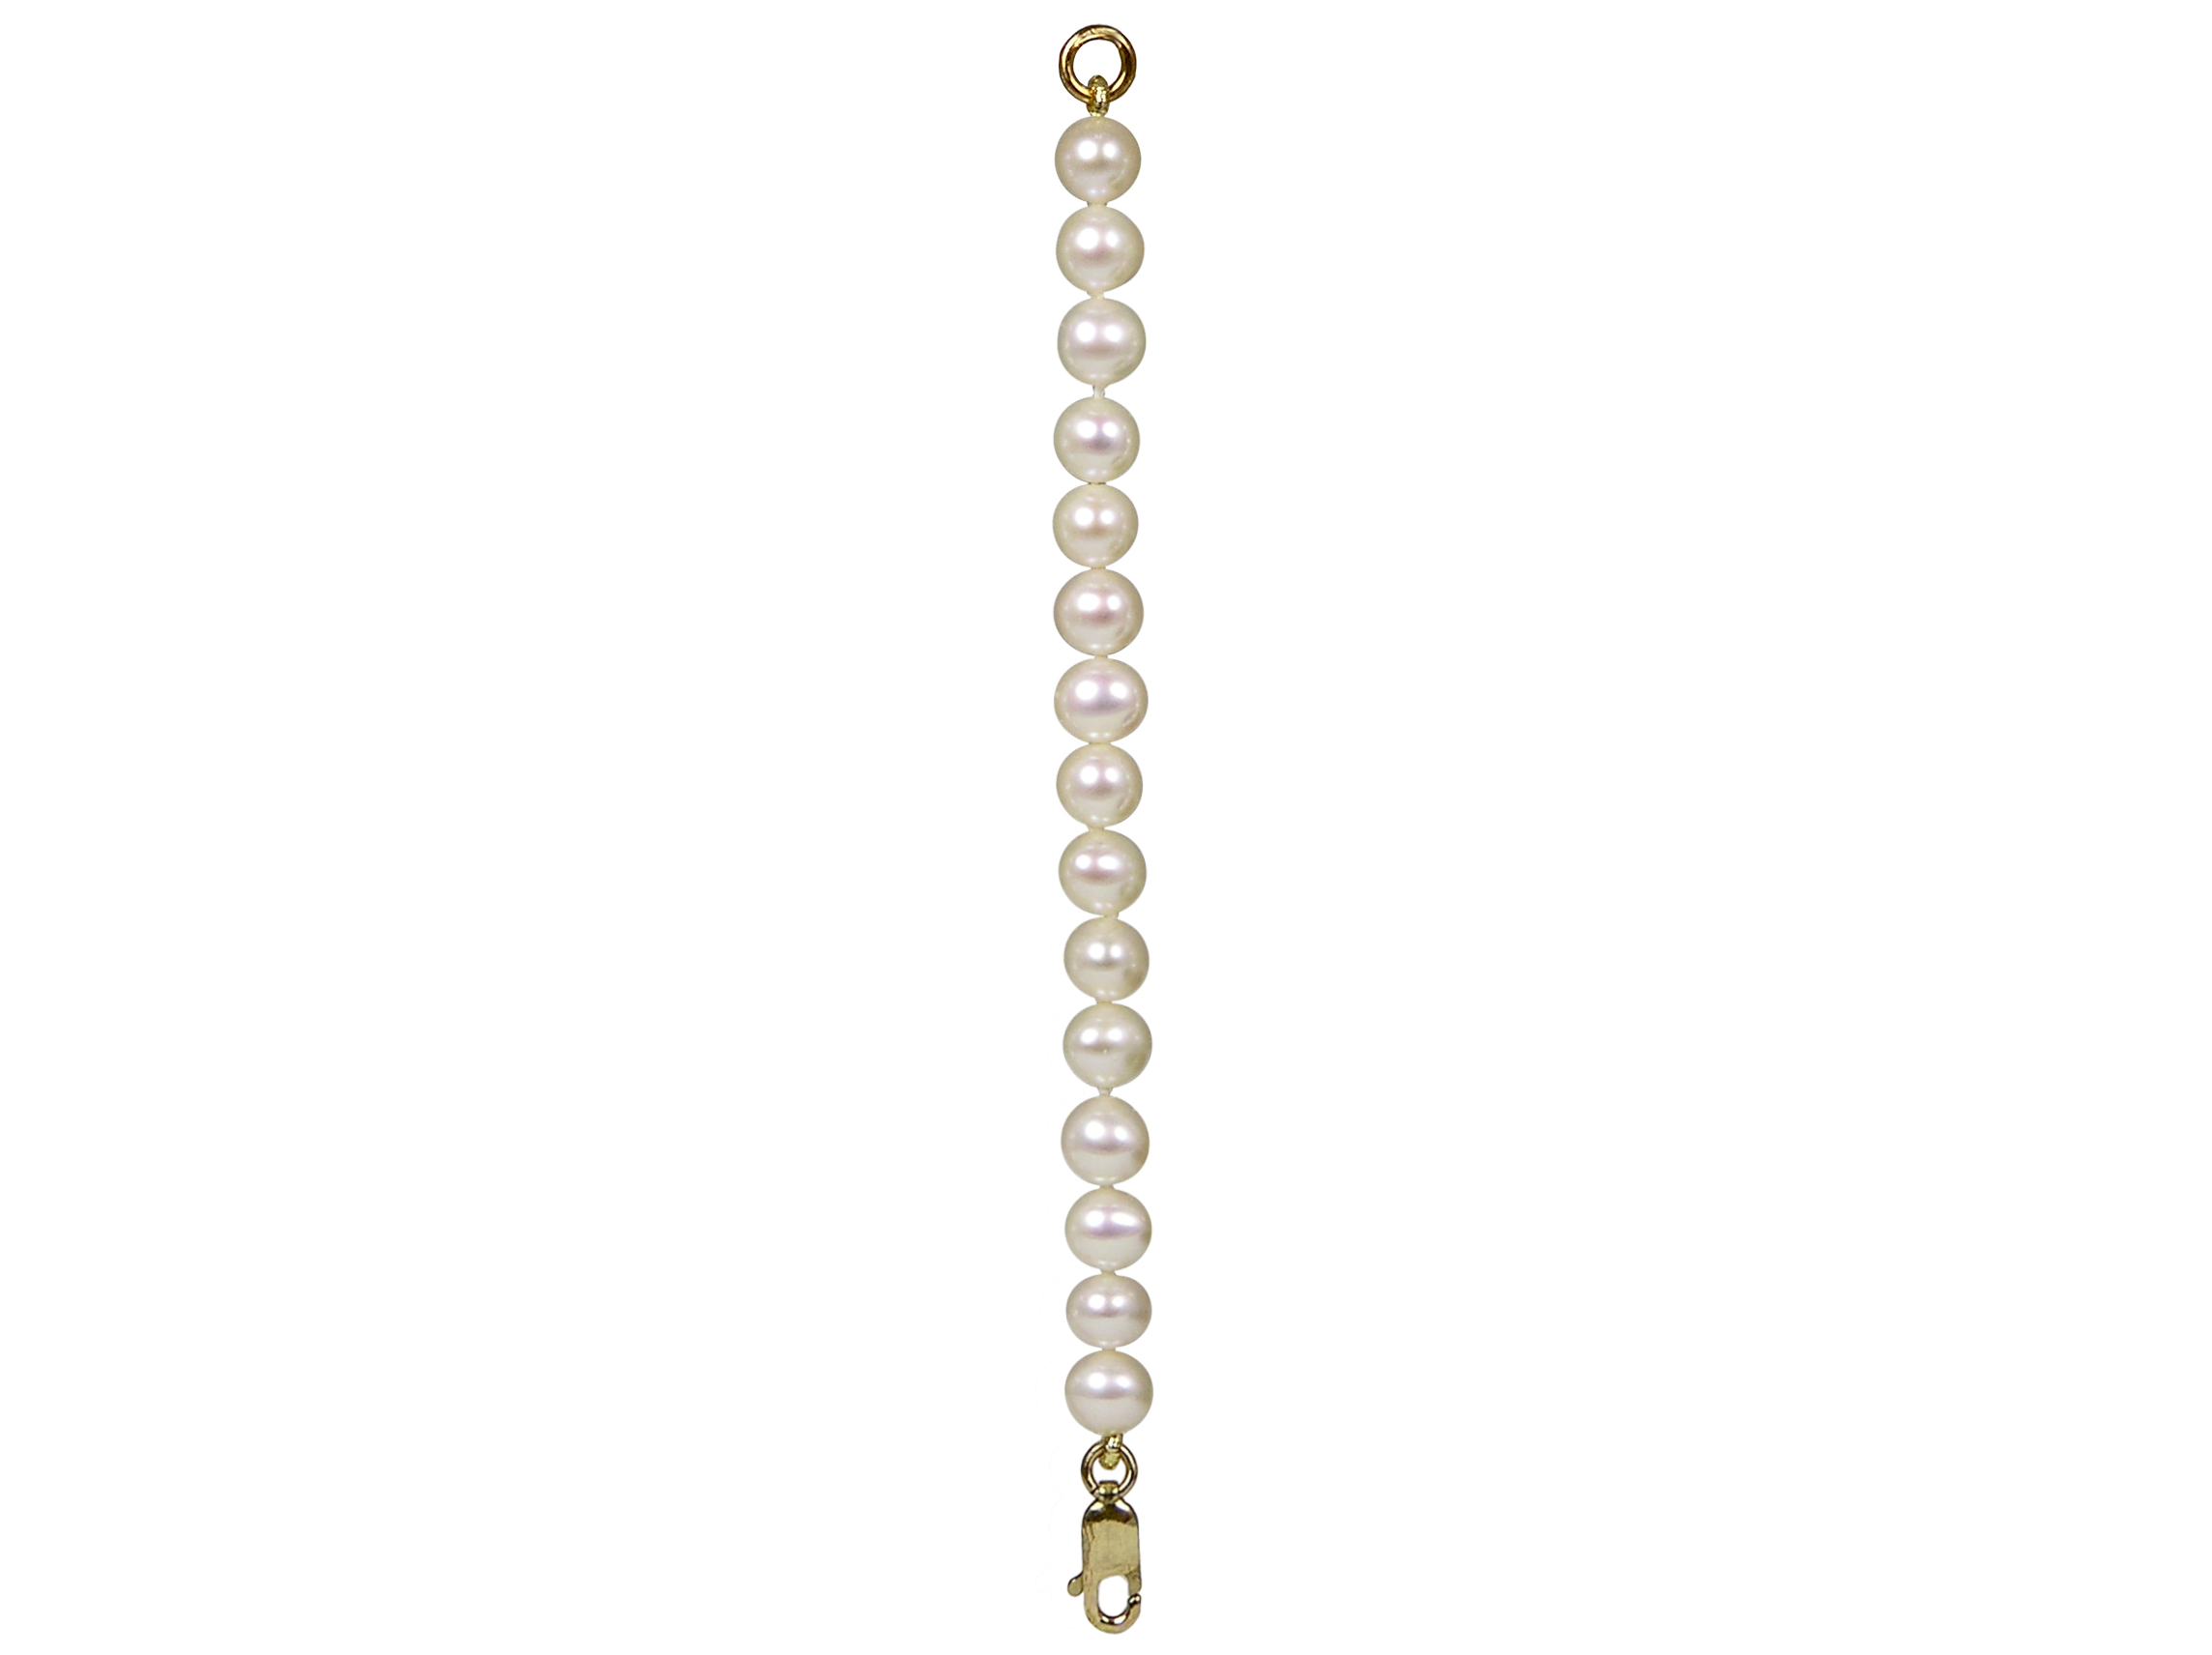 Pearl Necklace Extender